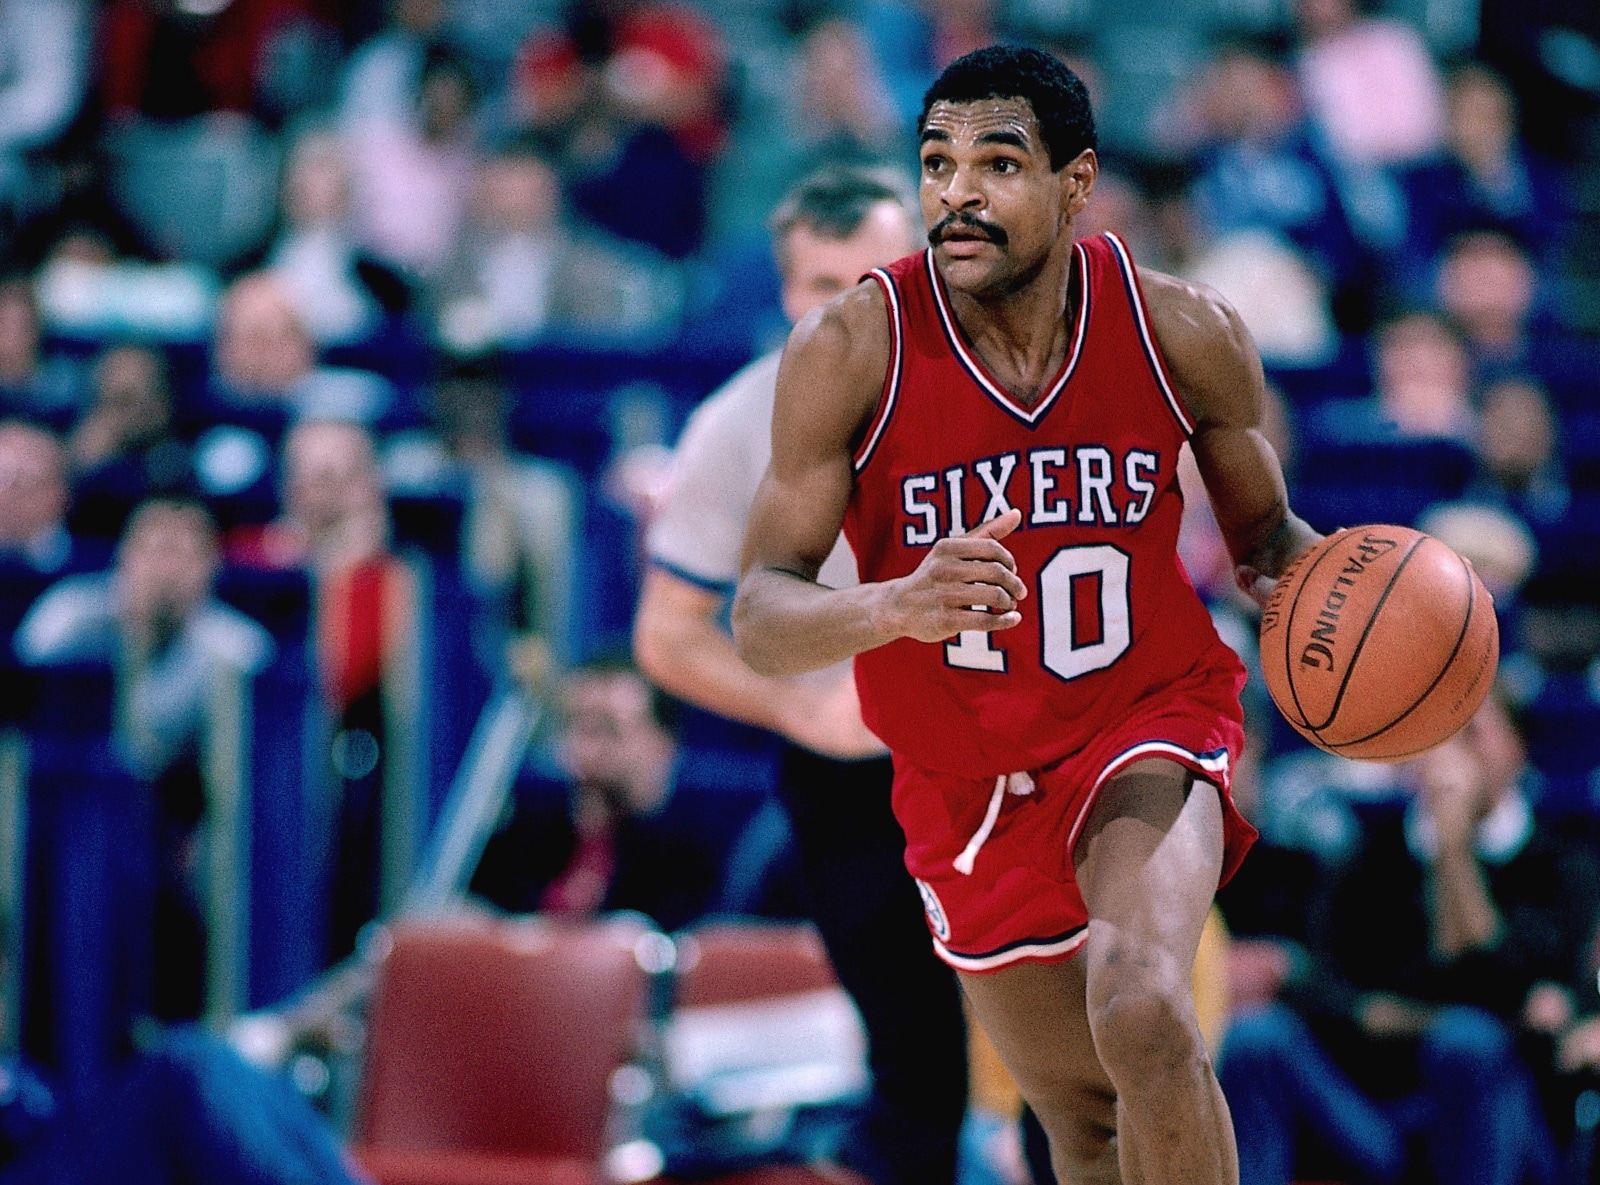 Mo Cheeks dribbles down the court for the Philadelphia 76ers